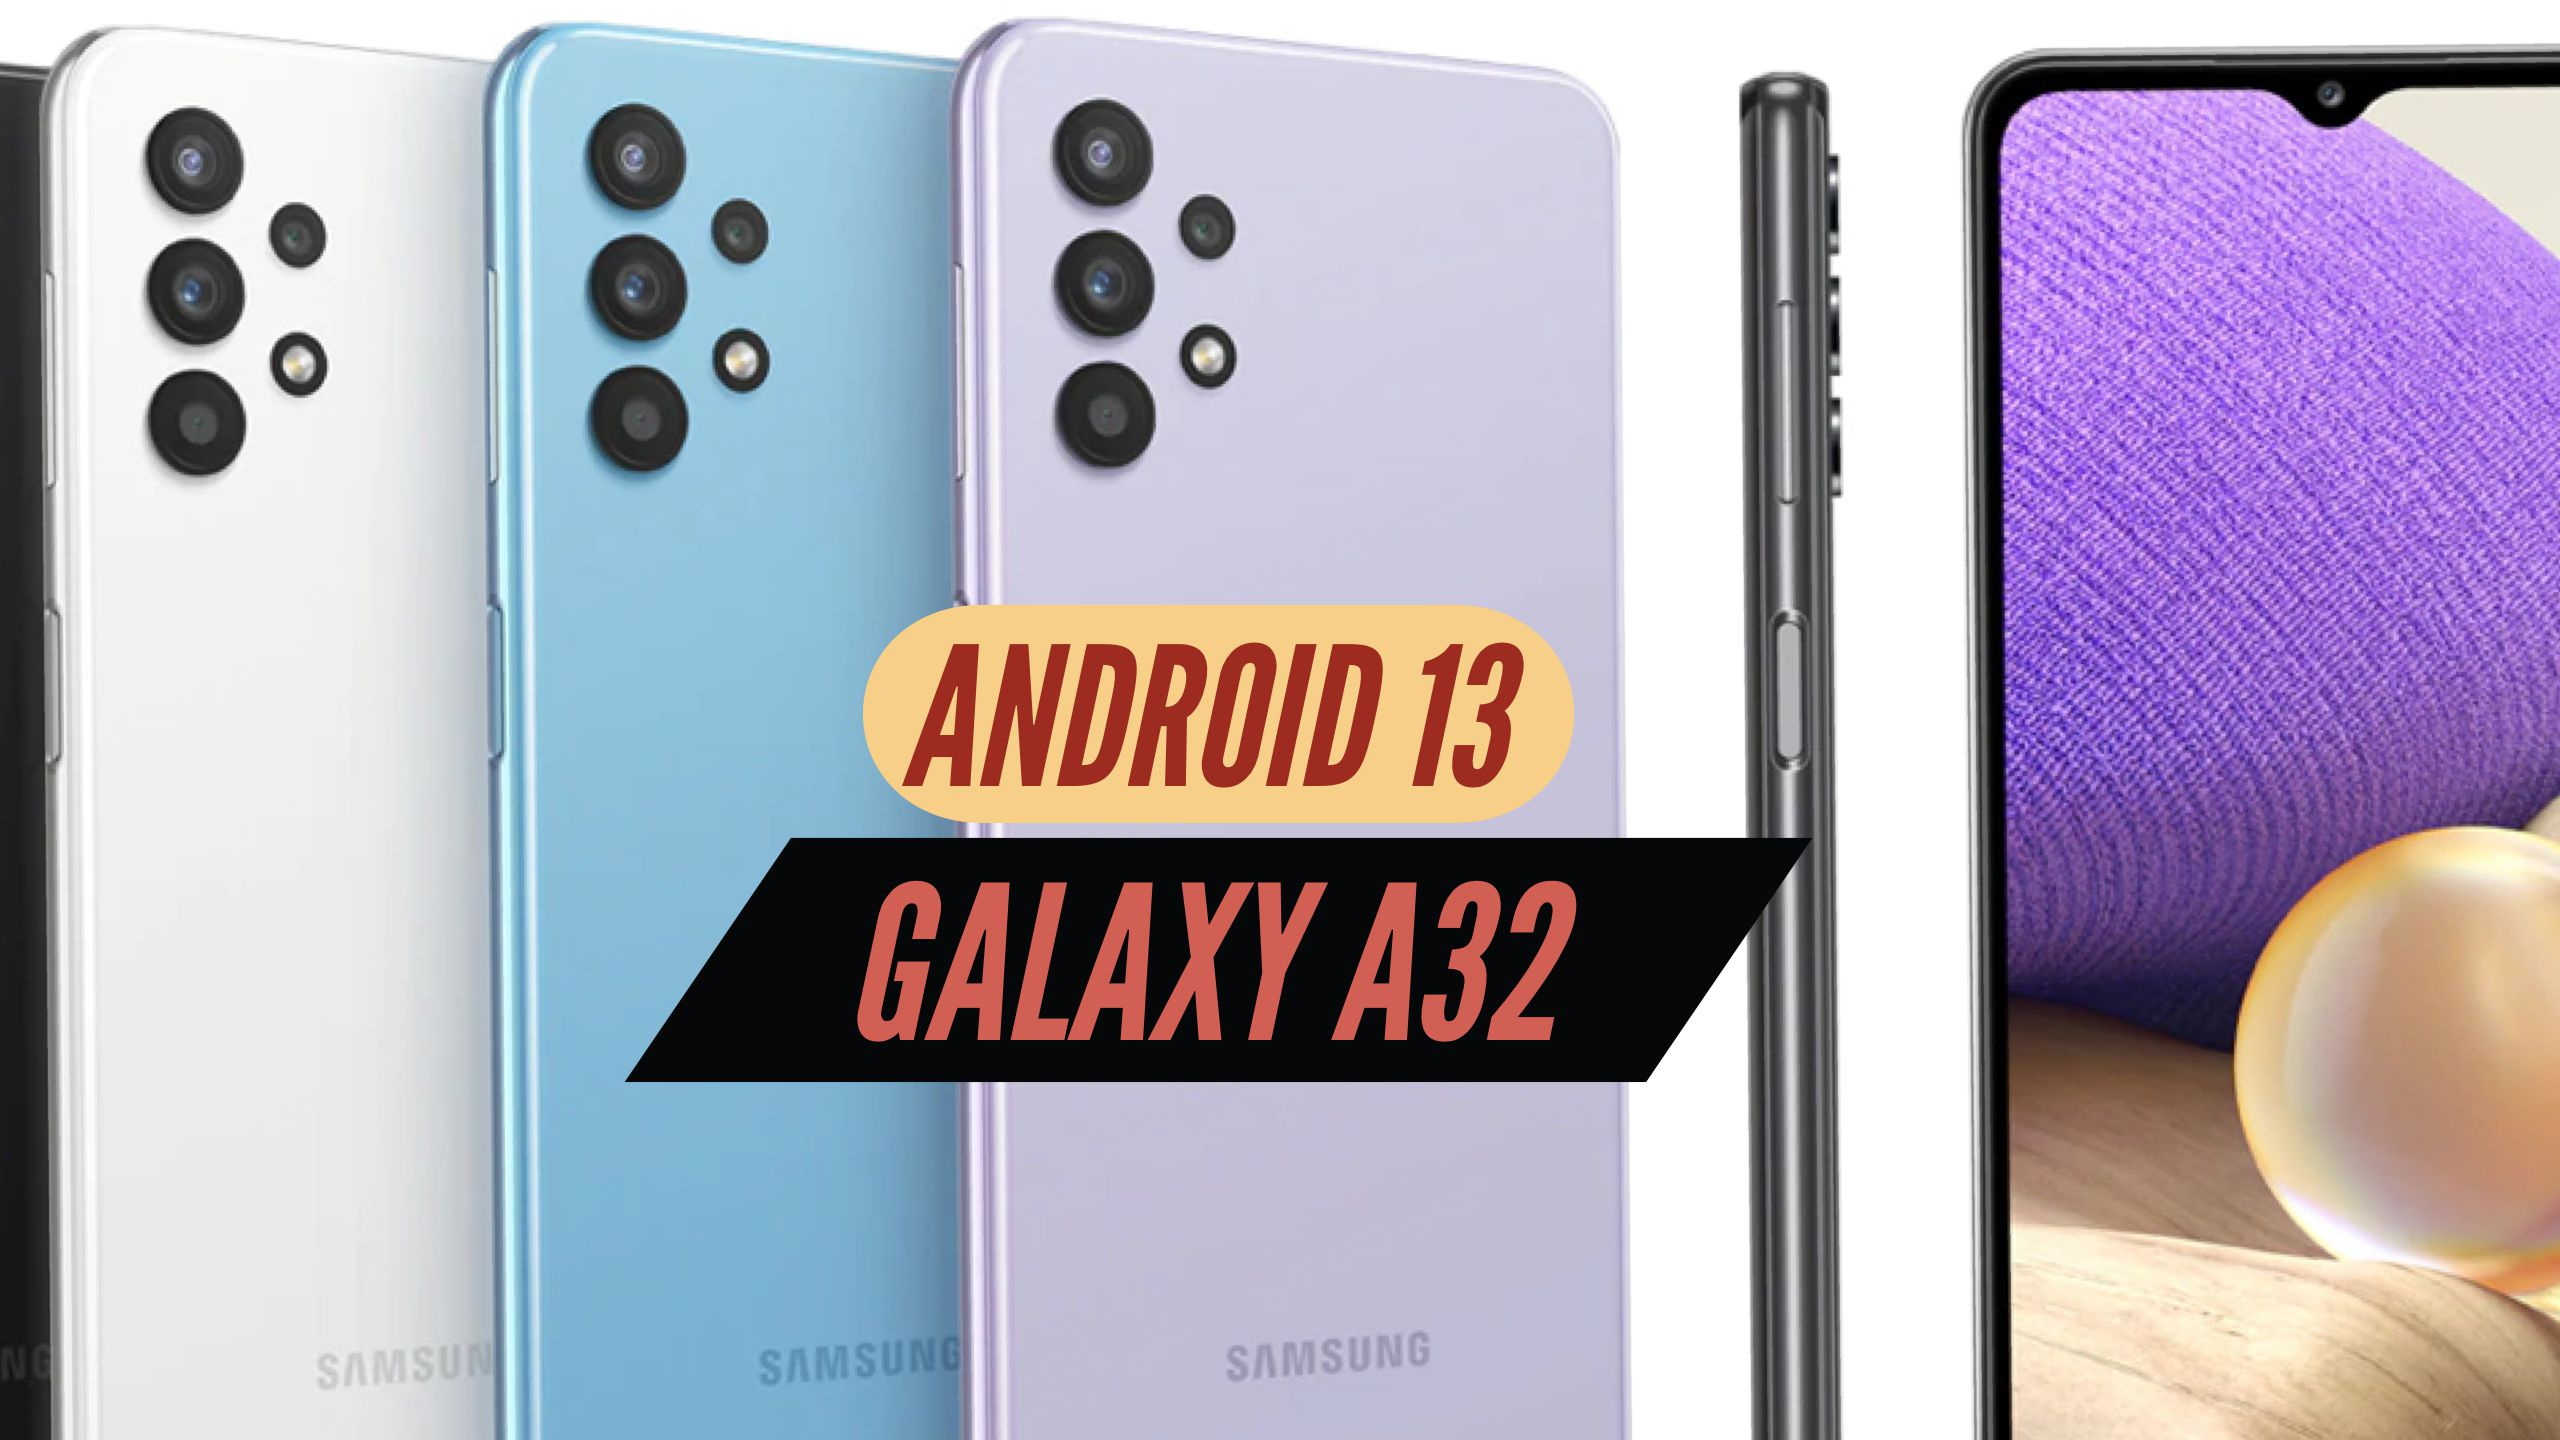 Android 13 Galaxy A32